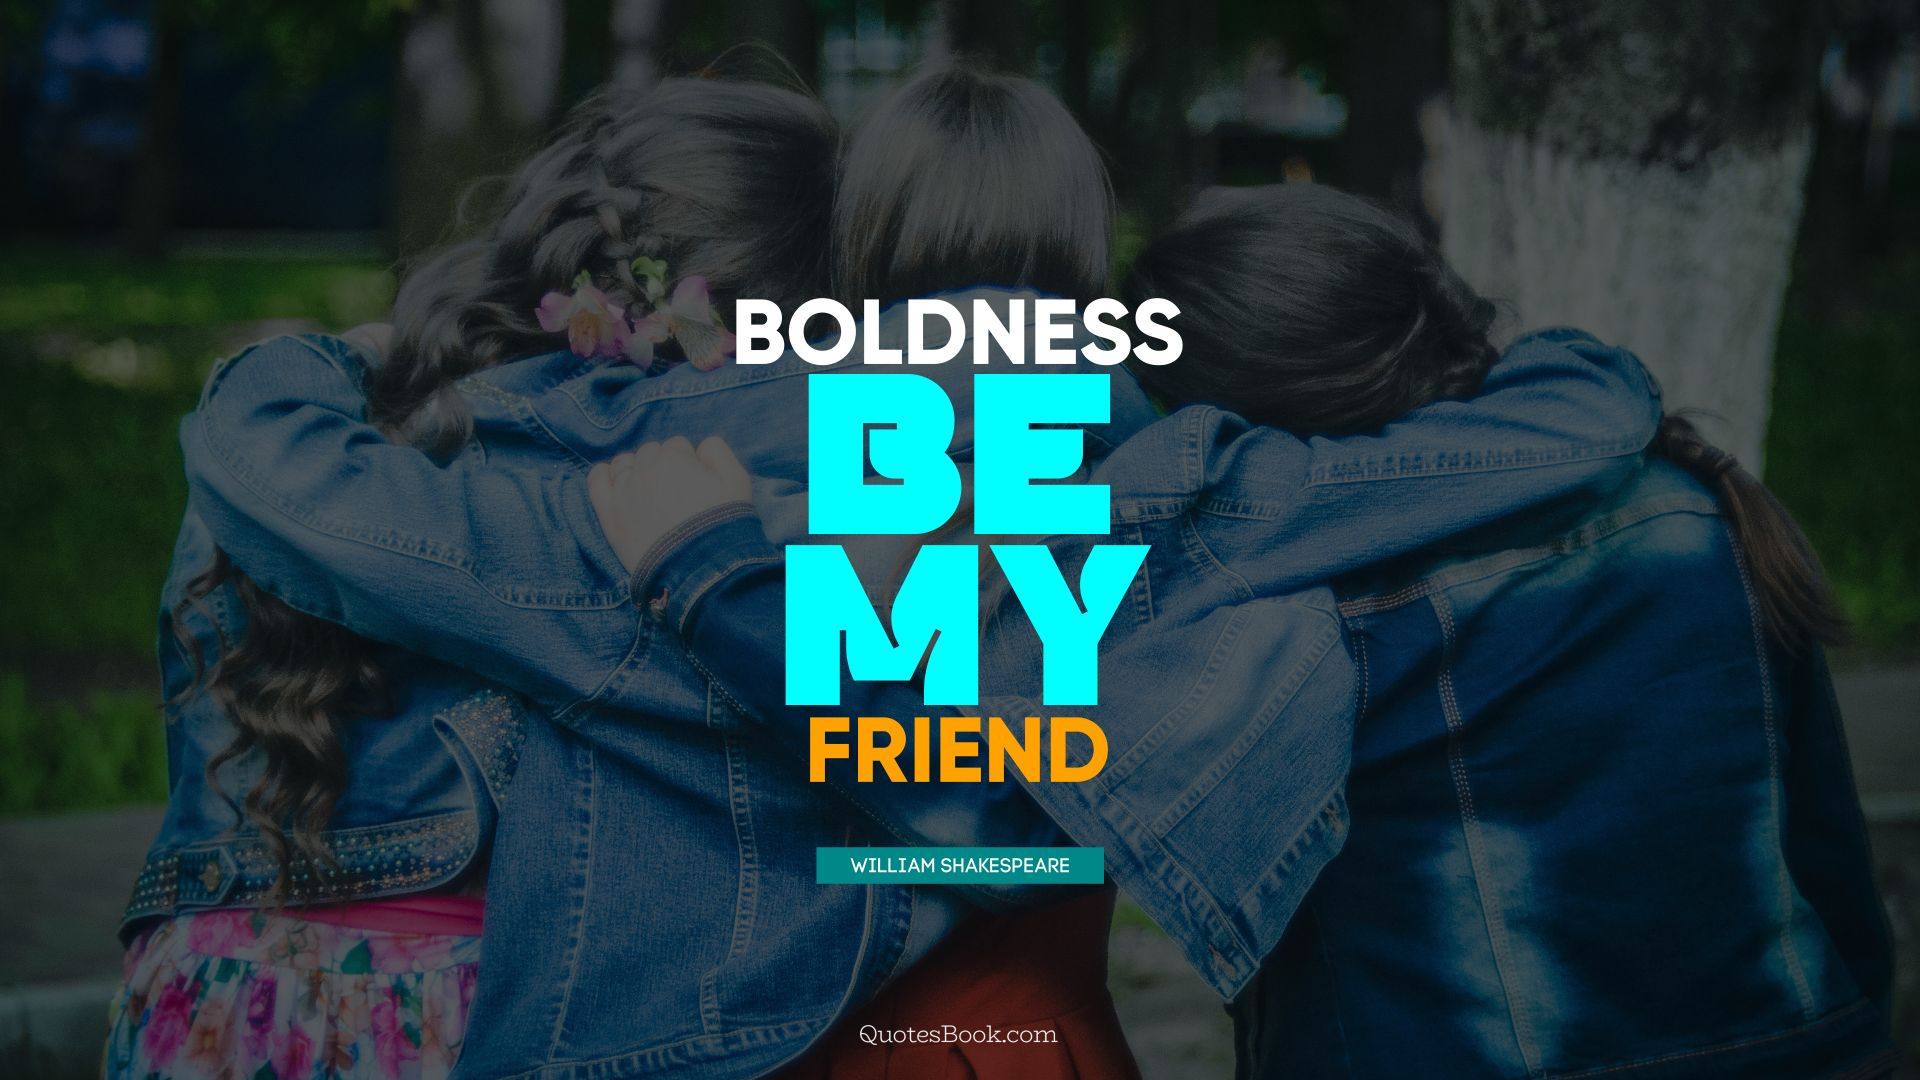 Boldness be my friend. - Quote by William Shakespeare